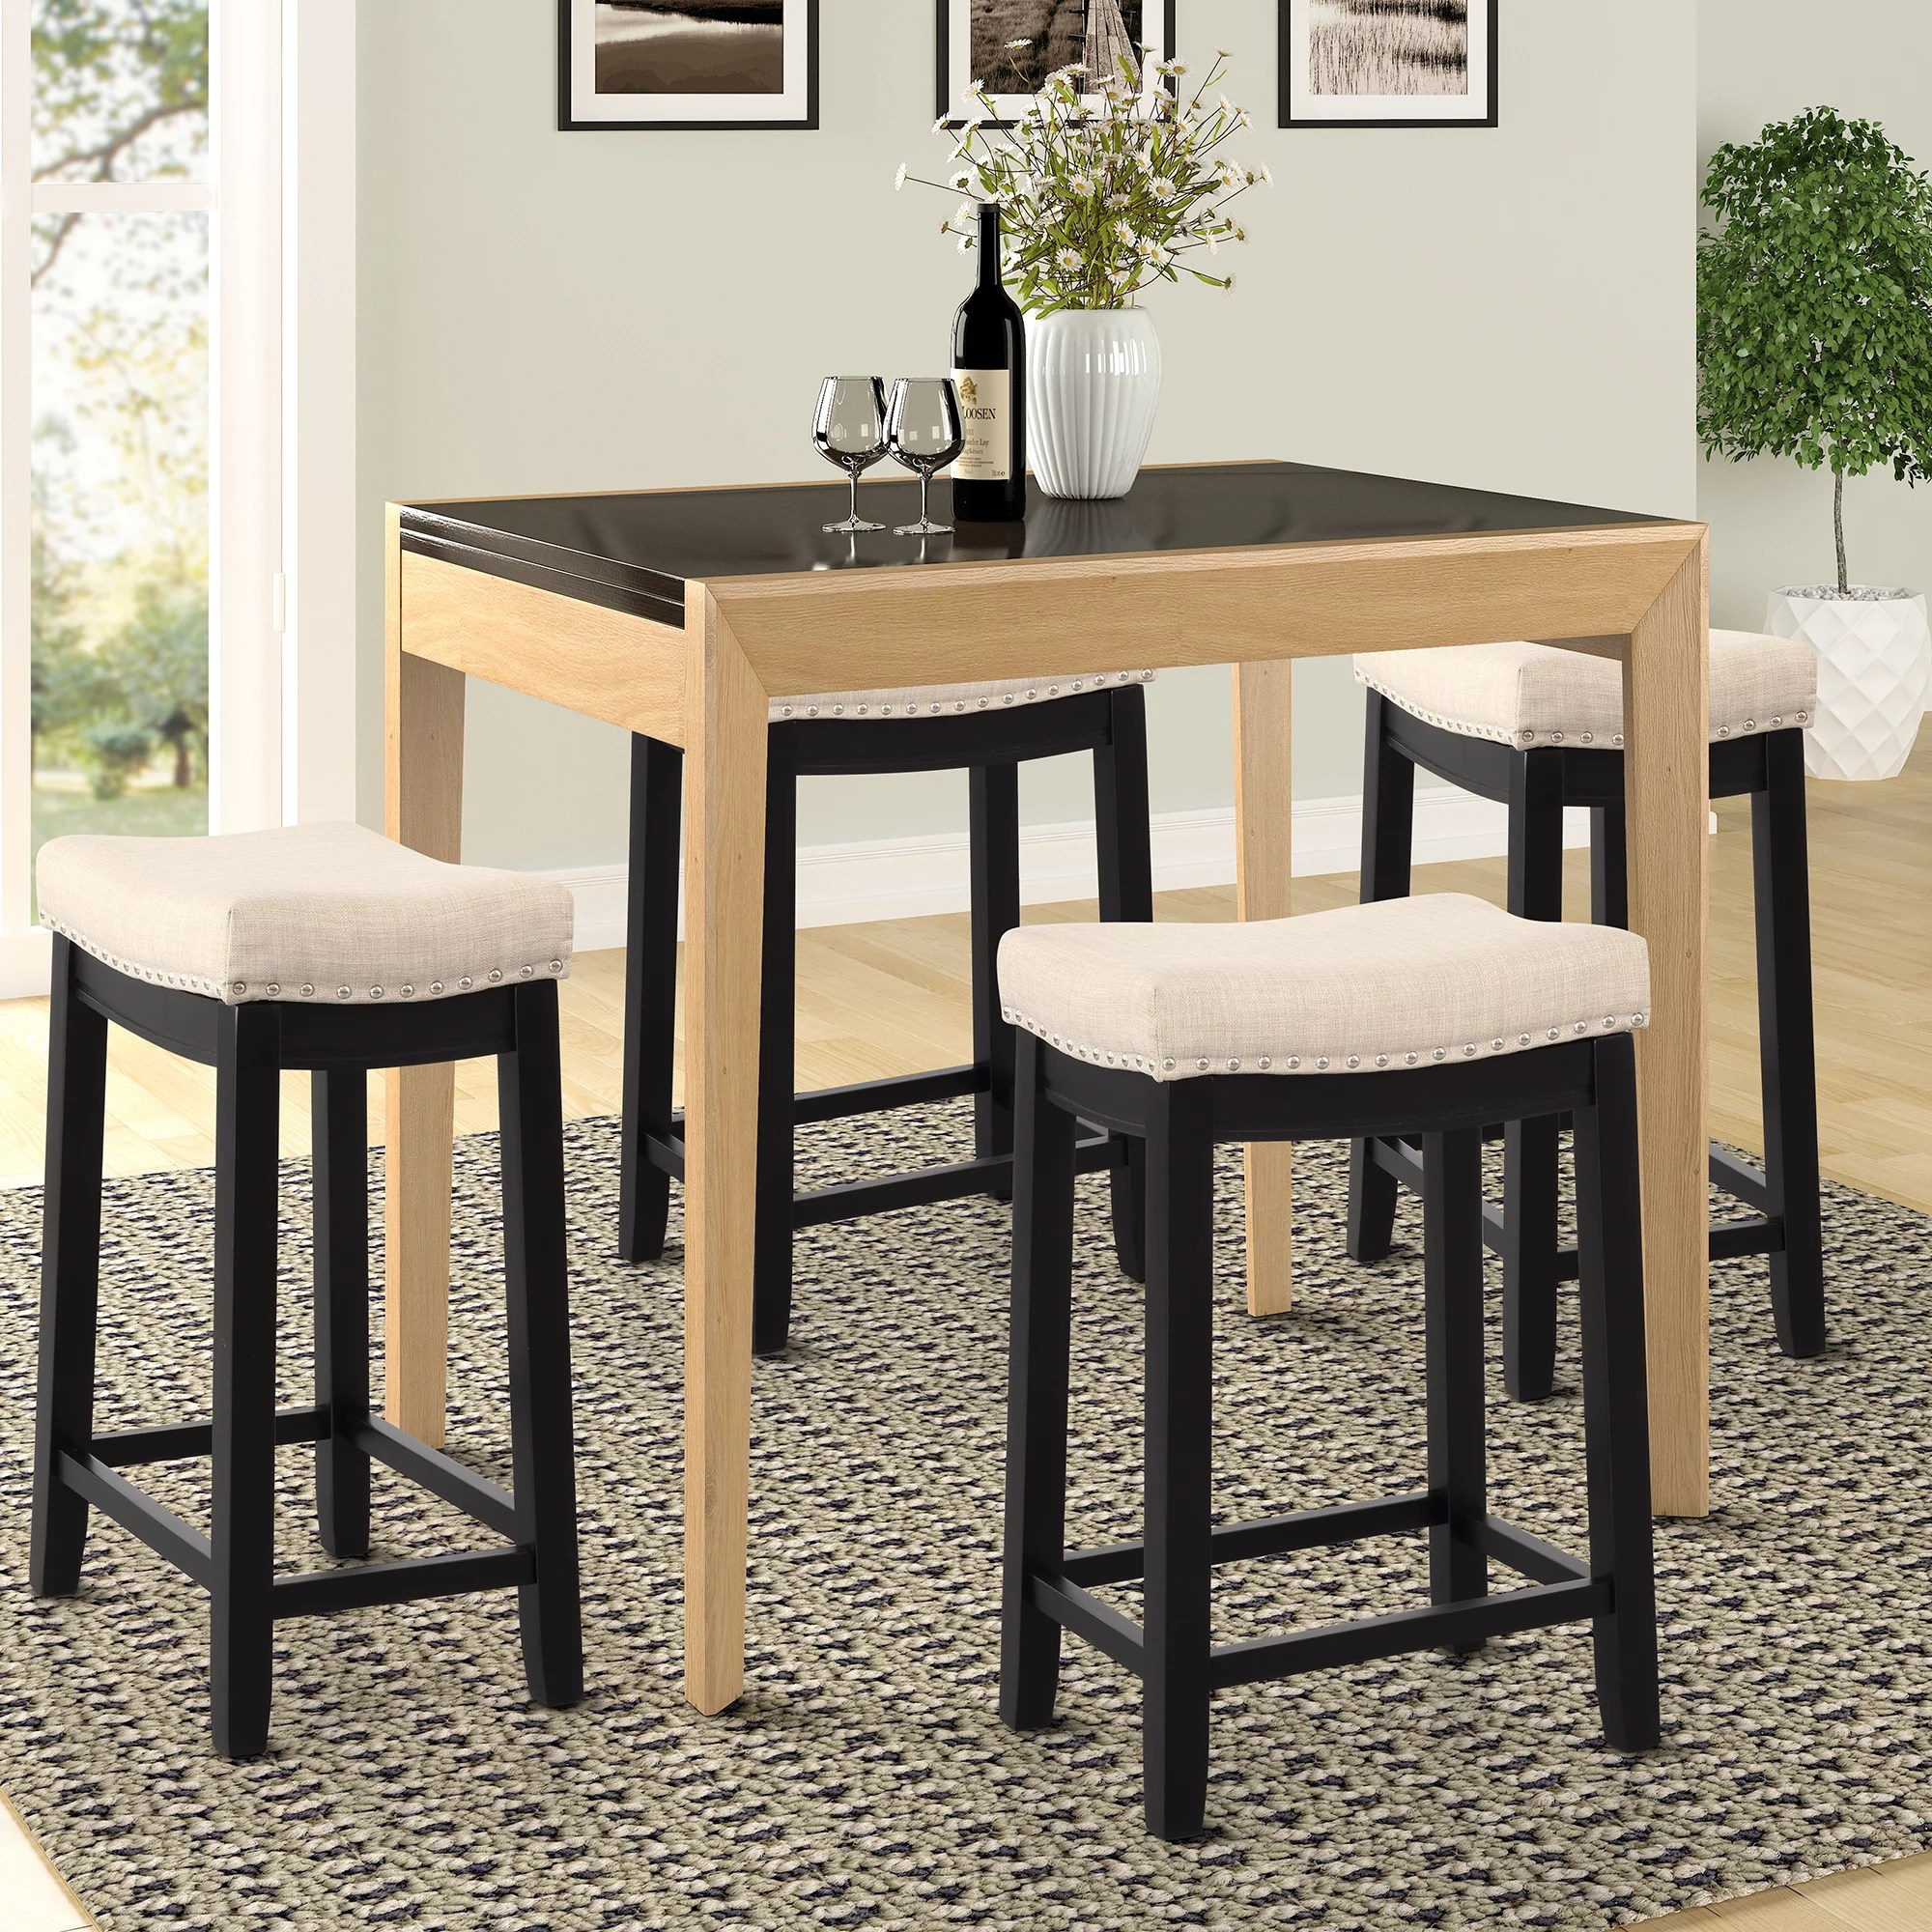 clearance outdoor patio bar stools set of 2 25 quot counter Outdoor Patio Bar Stools Clearance id=33490